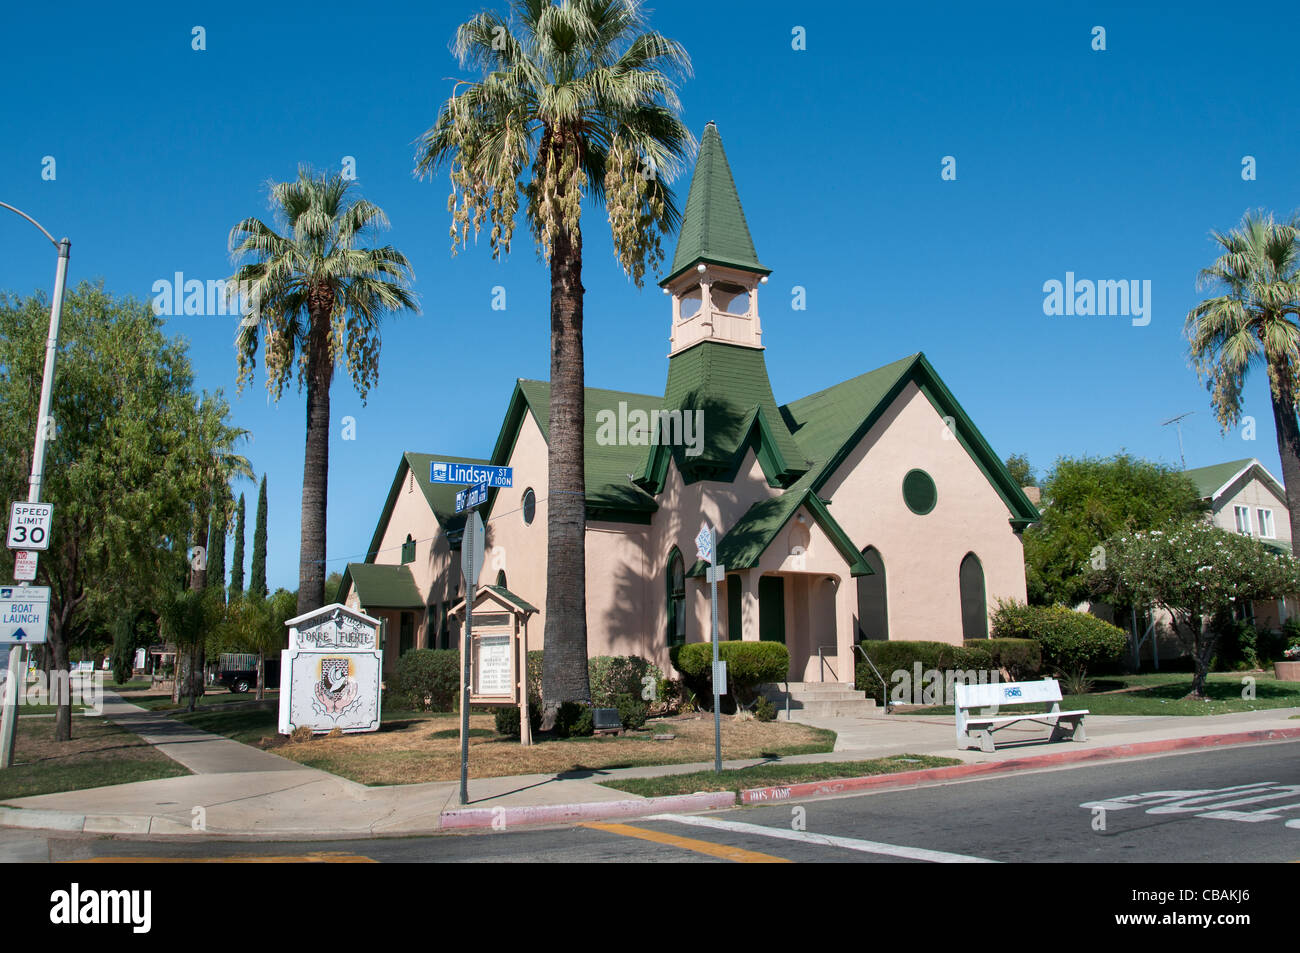 Church Lake Elsinore California United States of America - Stock Image